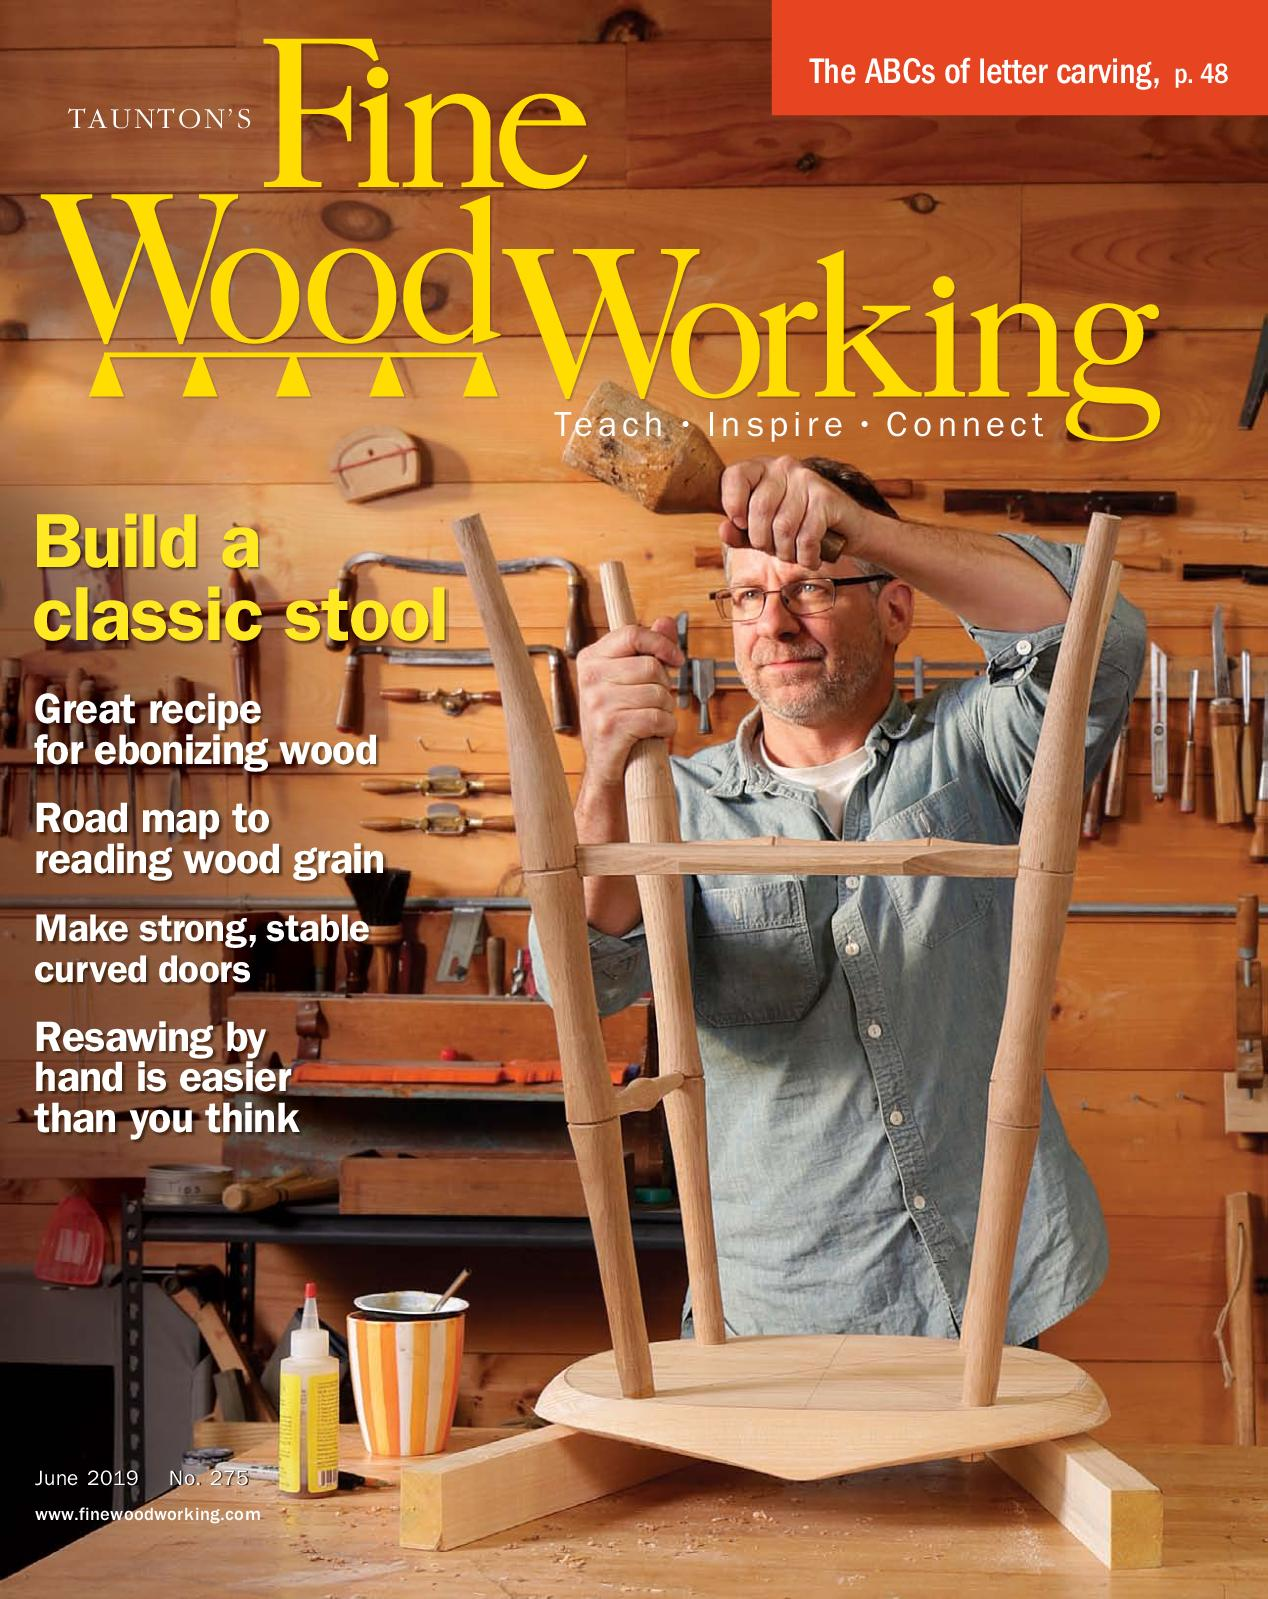 calaméo - preview of fine woodworking #275 may/june 2019